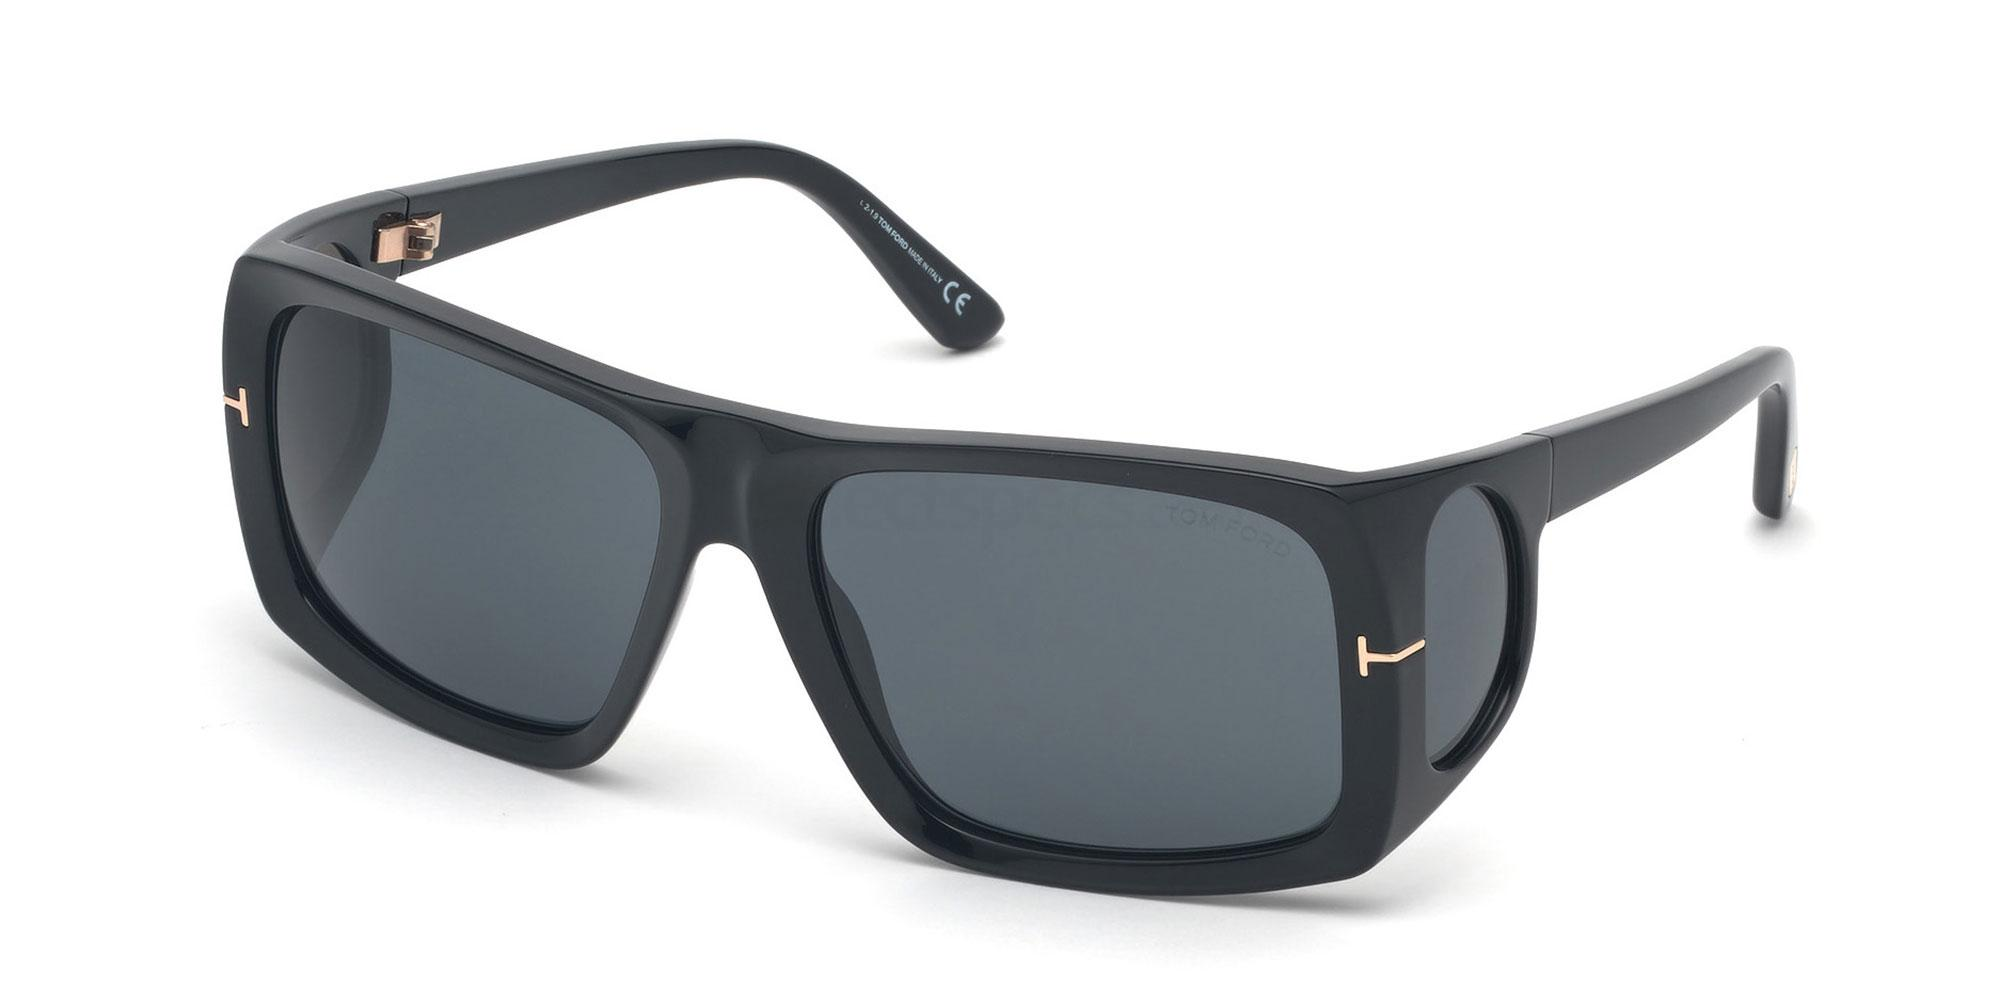 01A FT0730 Sunglasses, Tom Ford